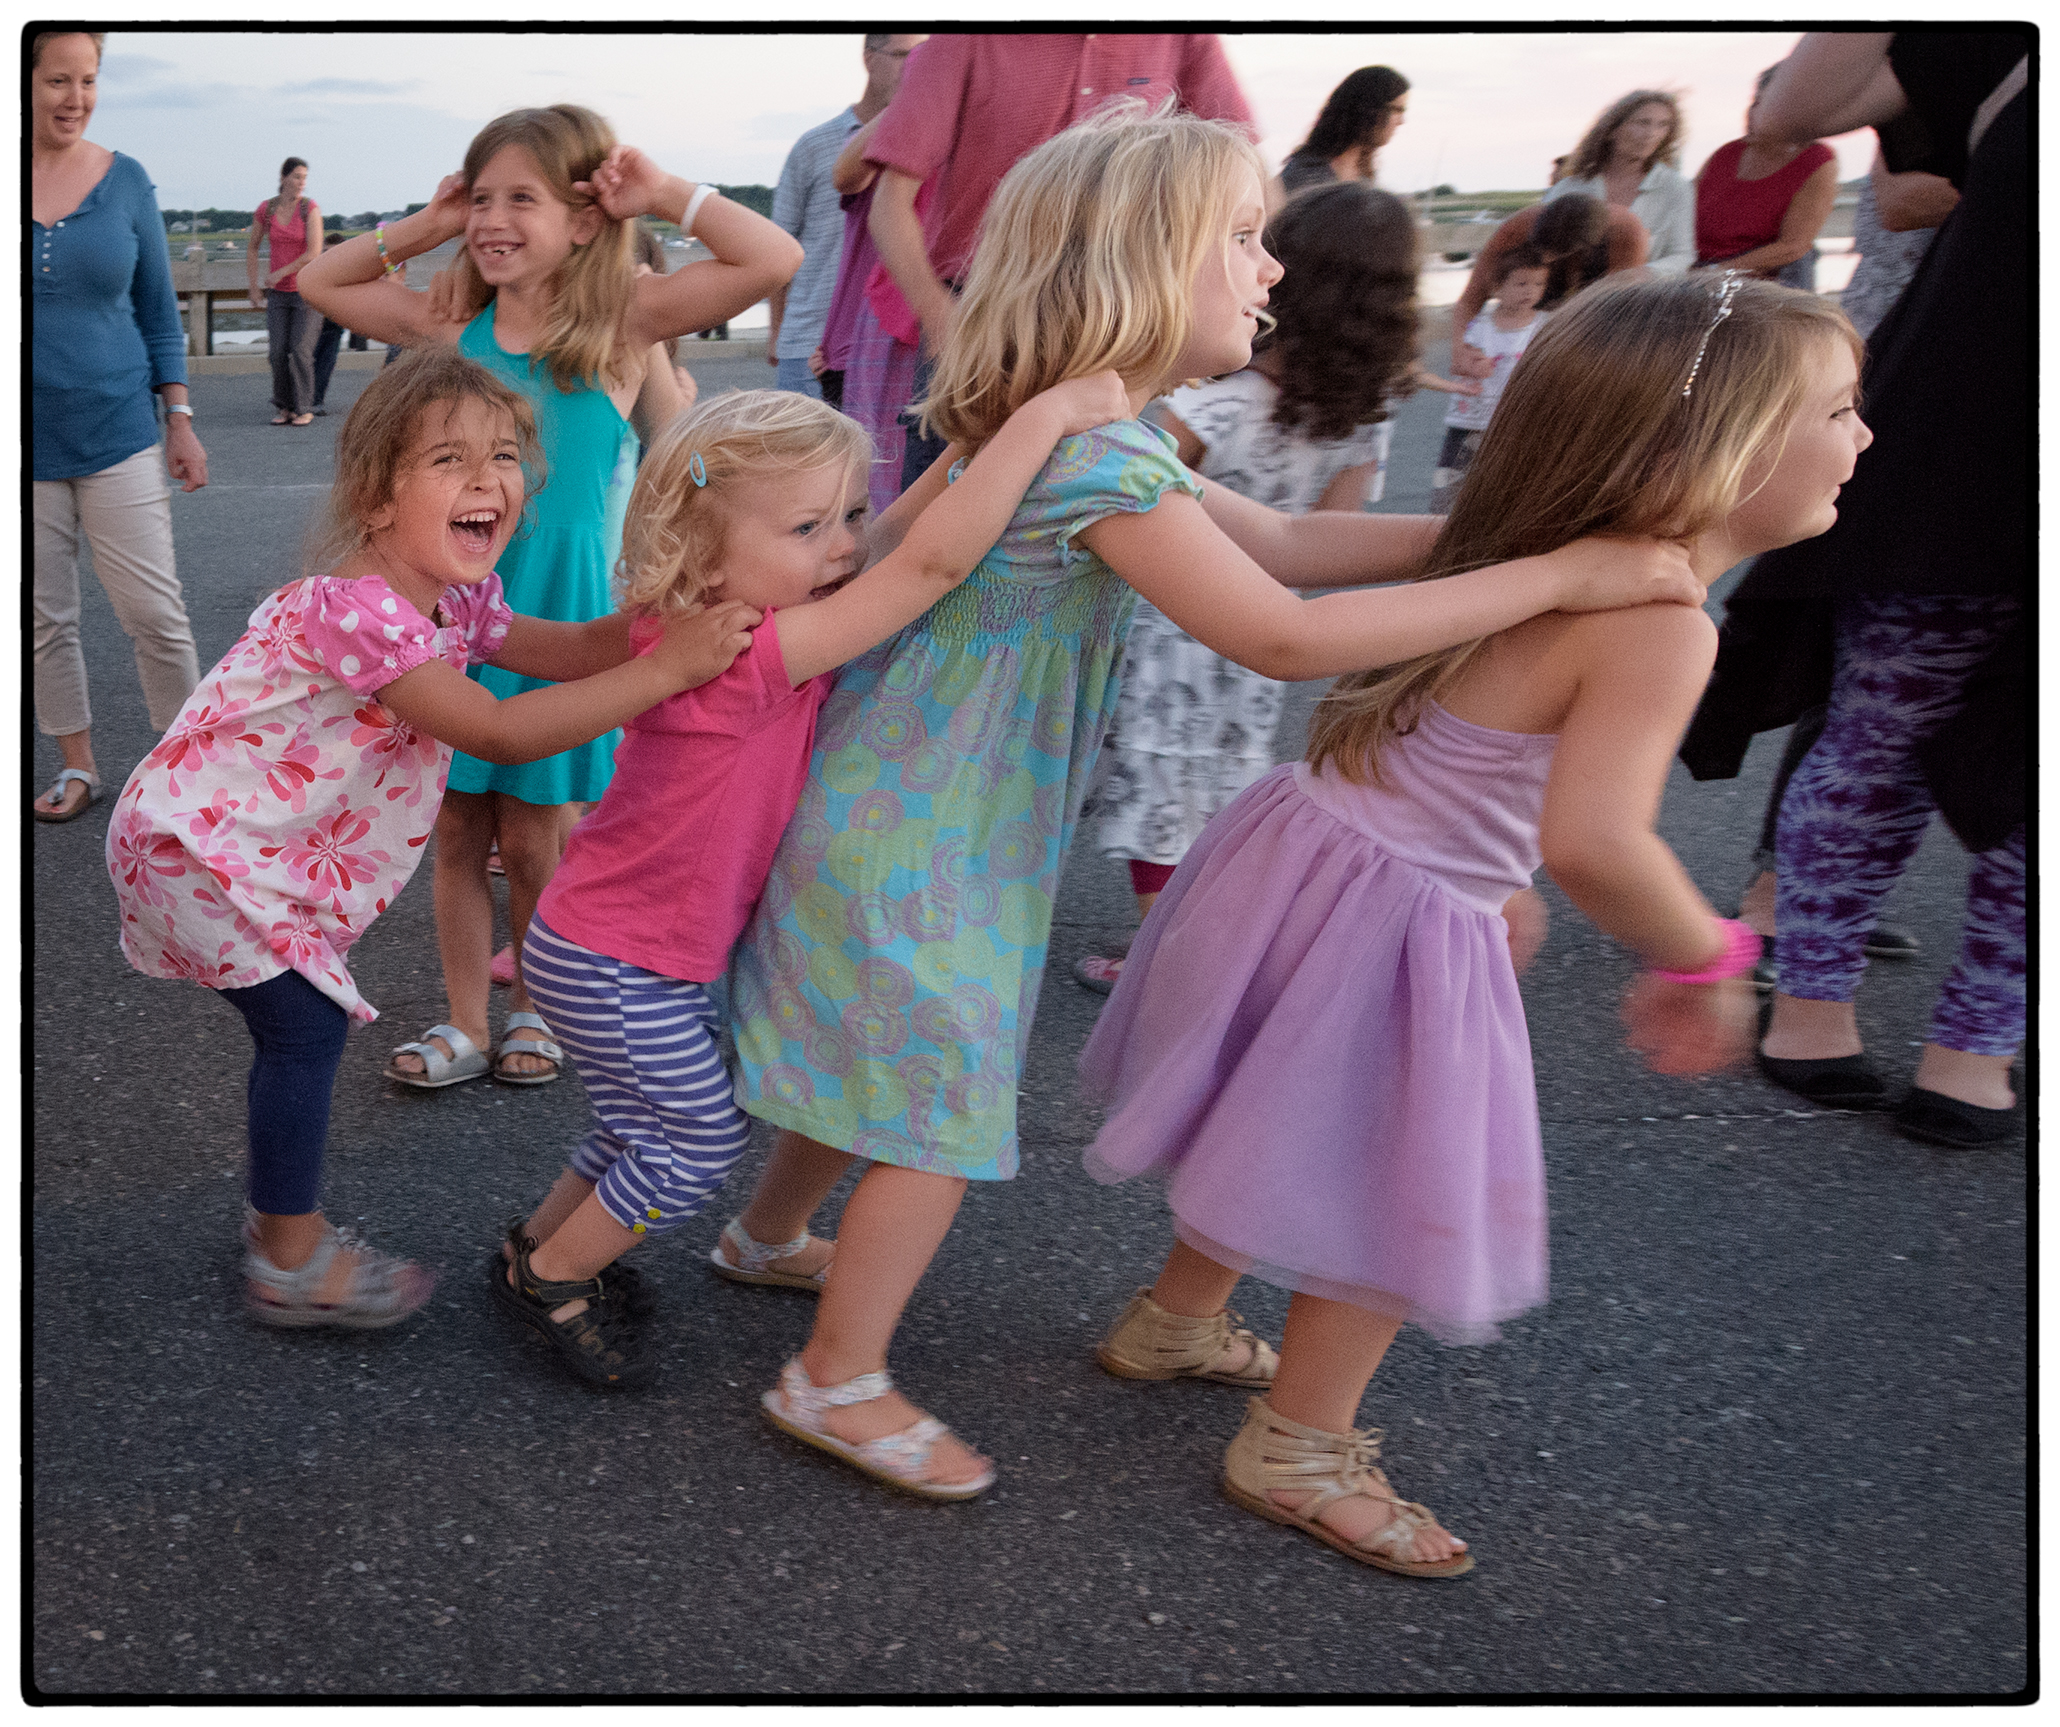 Wednesday night dance at the harbor.  The bunny hop.